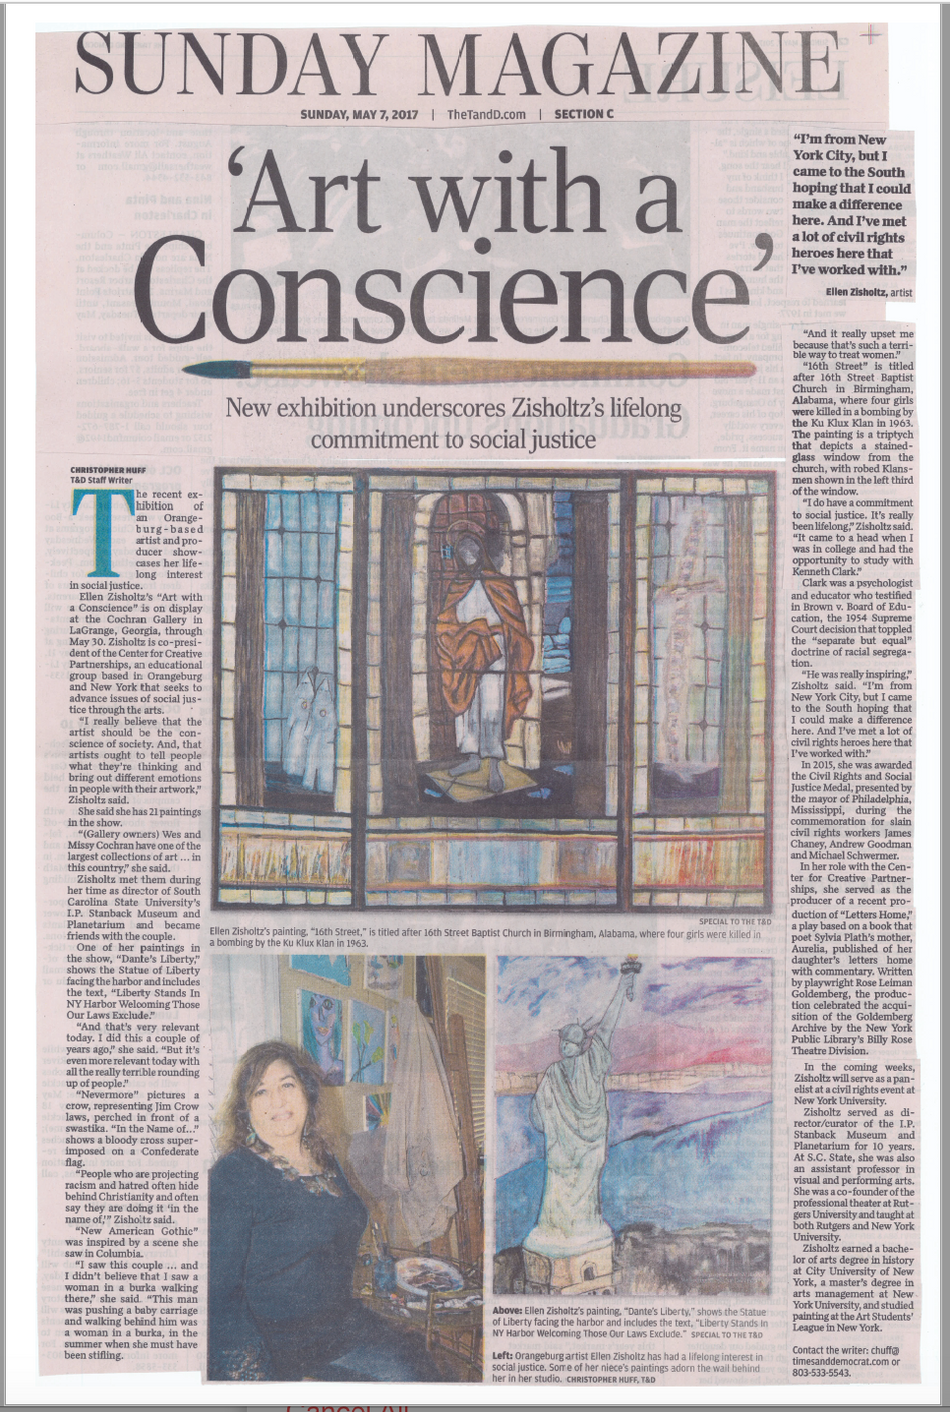 Cochran Gallery: Art with a Conscience